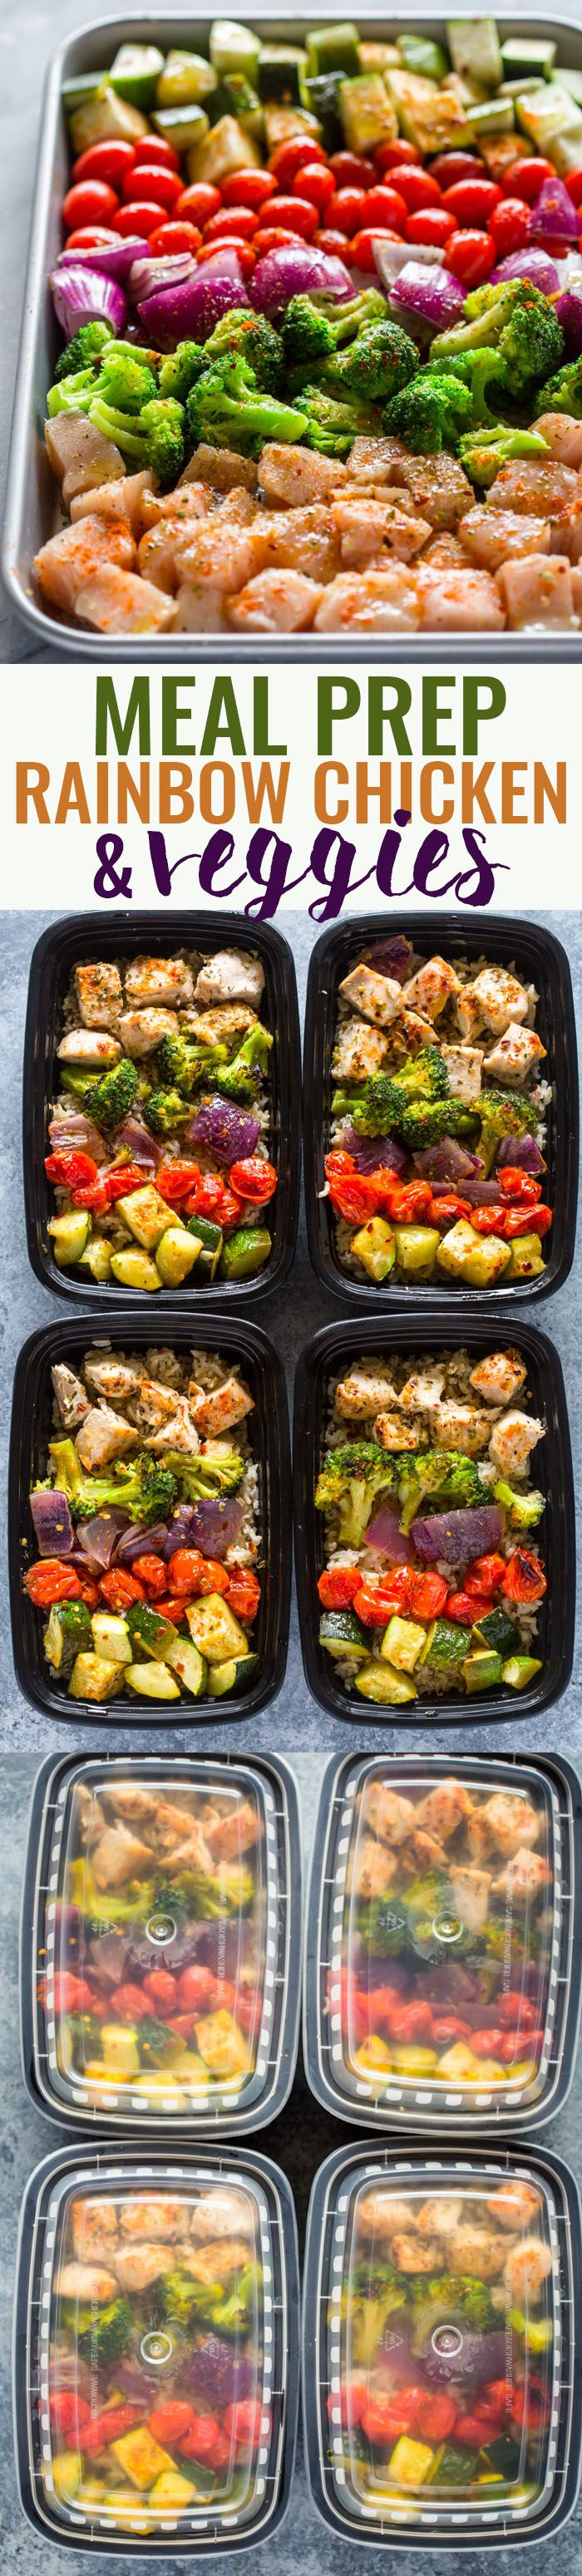 Is it getting hot in here, or is it just you? Preheat your oven and get to roasting your protein and veggies with this Meal Prep Rainbow Chicken and Veggies recipe!